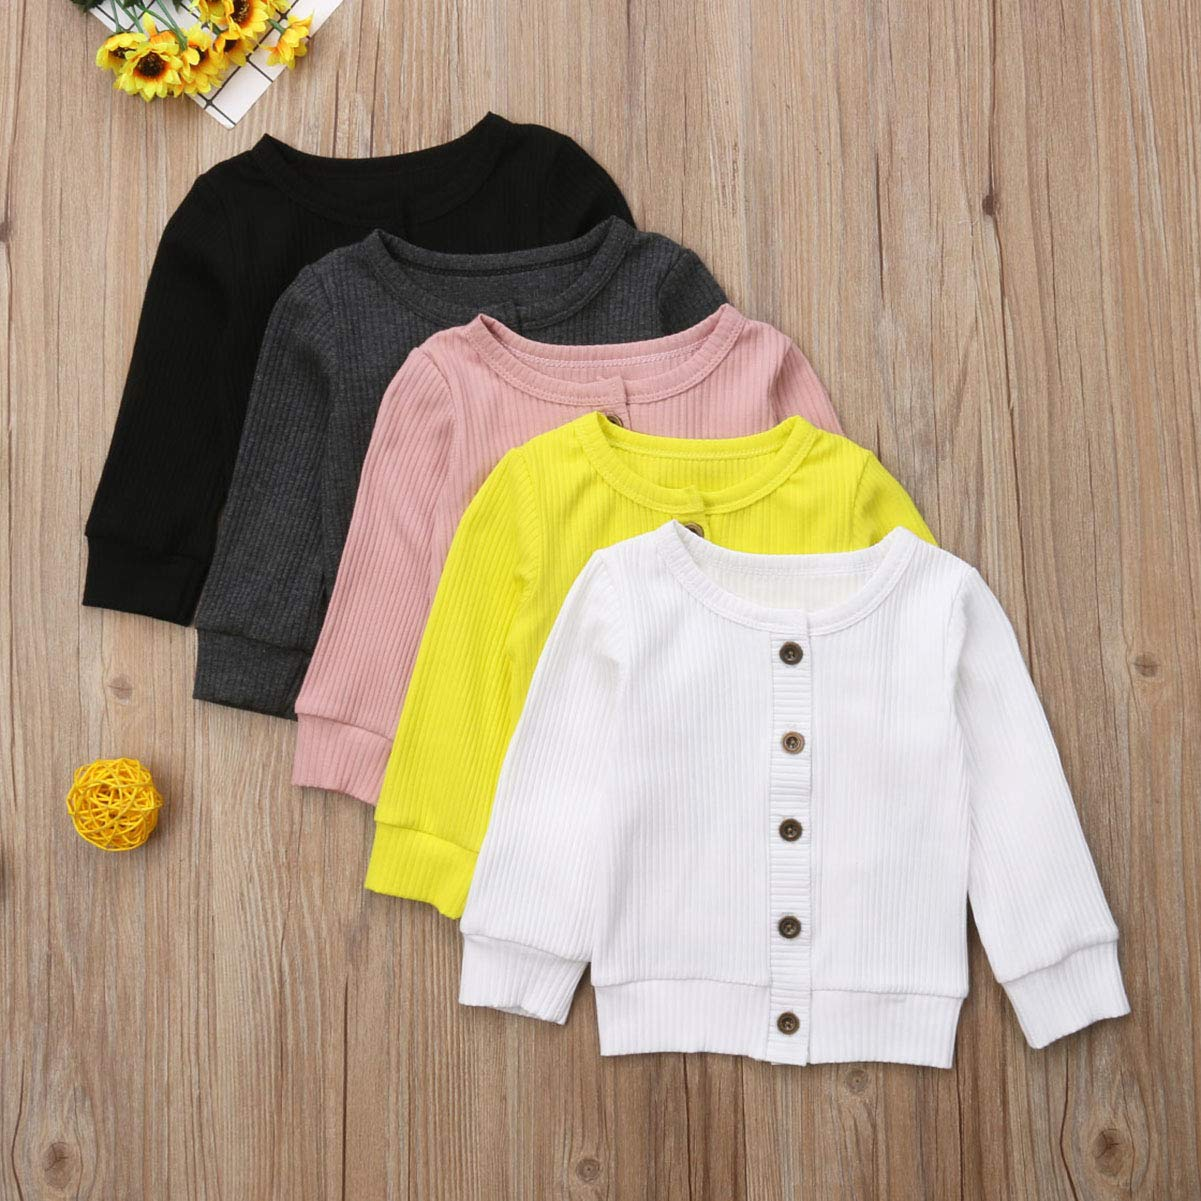 b95863a98 Infant Baby Girl Button Down Knitwear Long Sleeve Soft Basic Knit ...